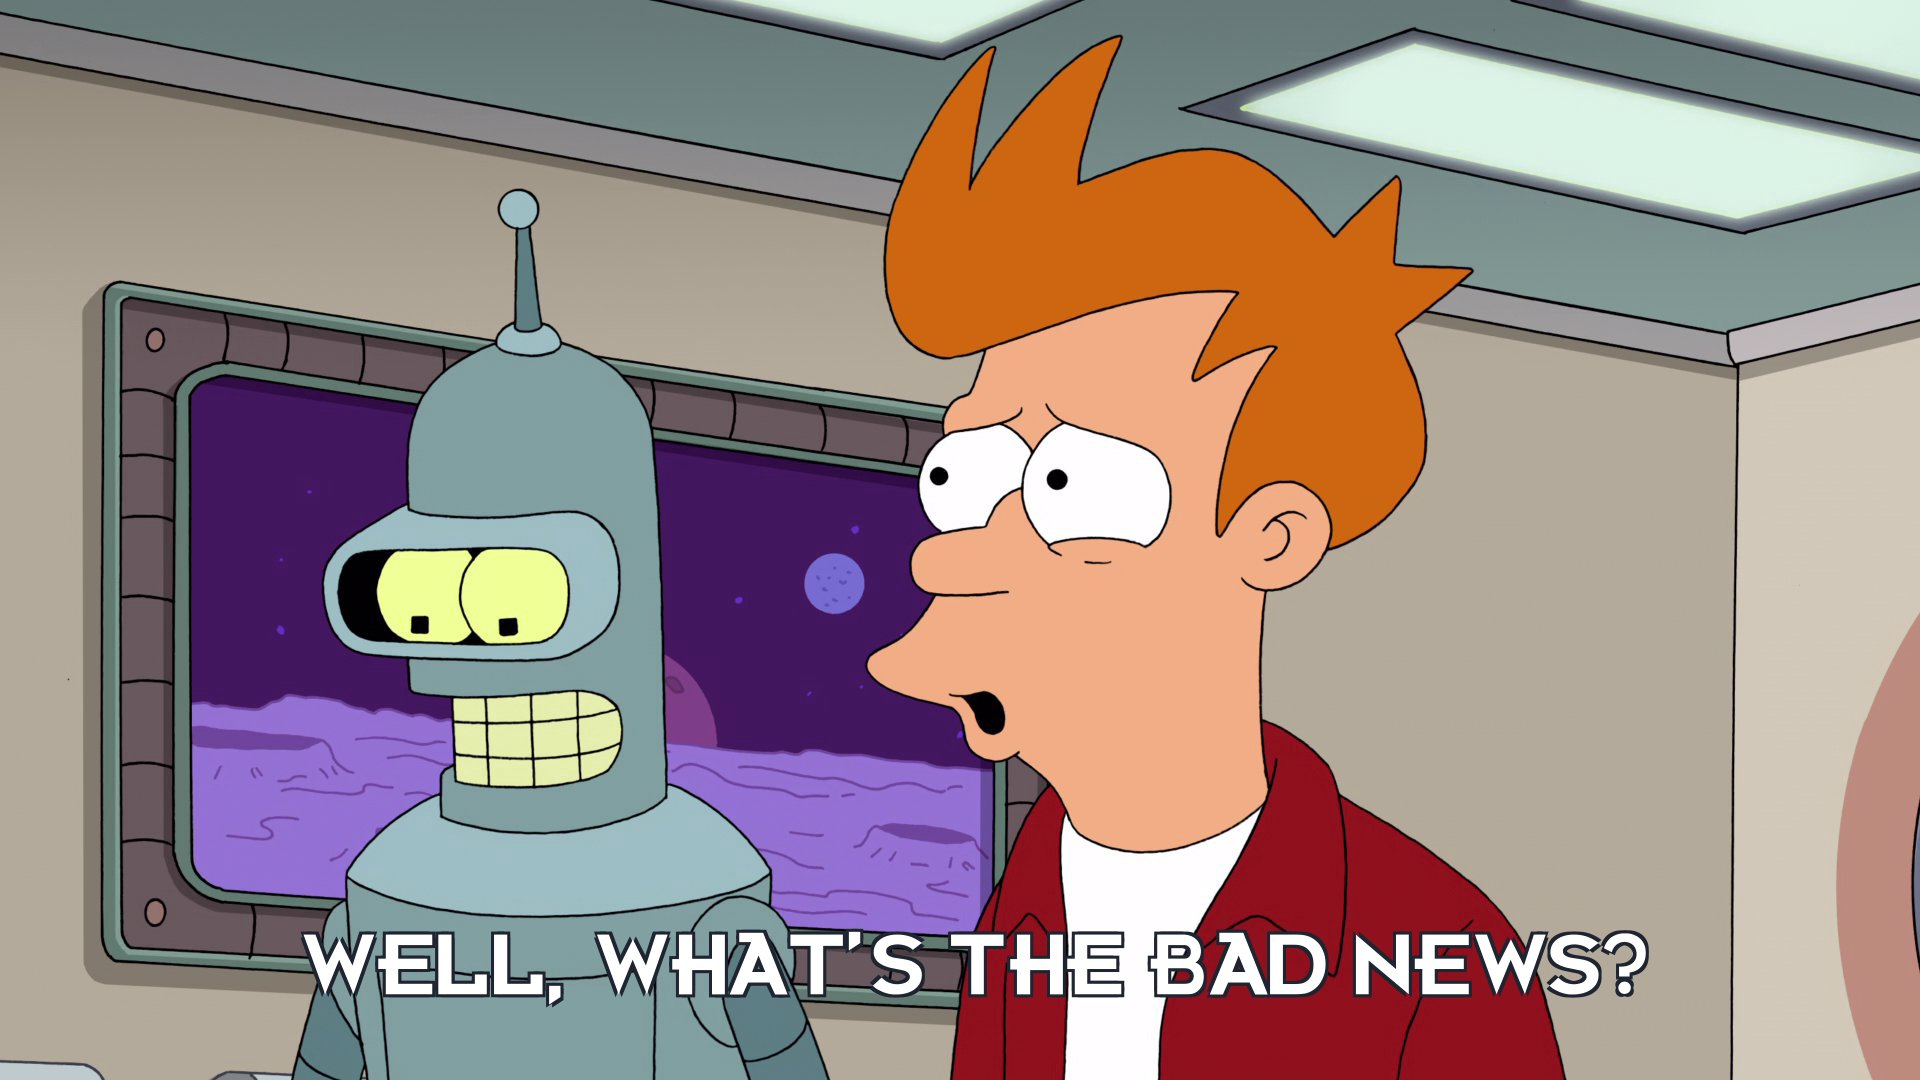 Philip J Fry: Well, what's the bad news?